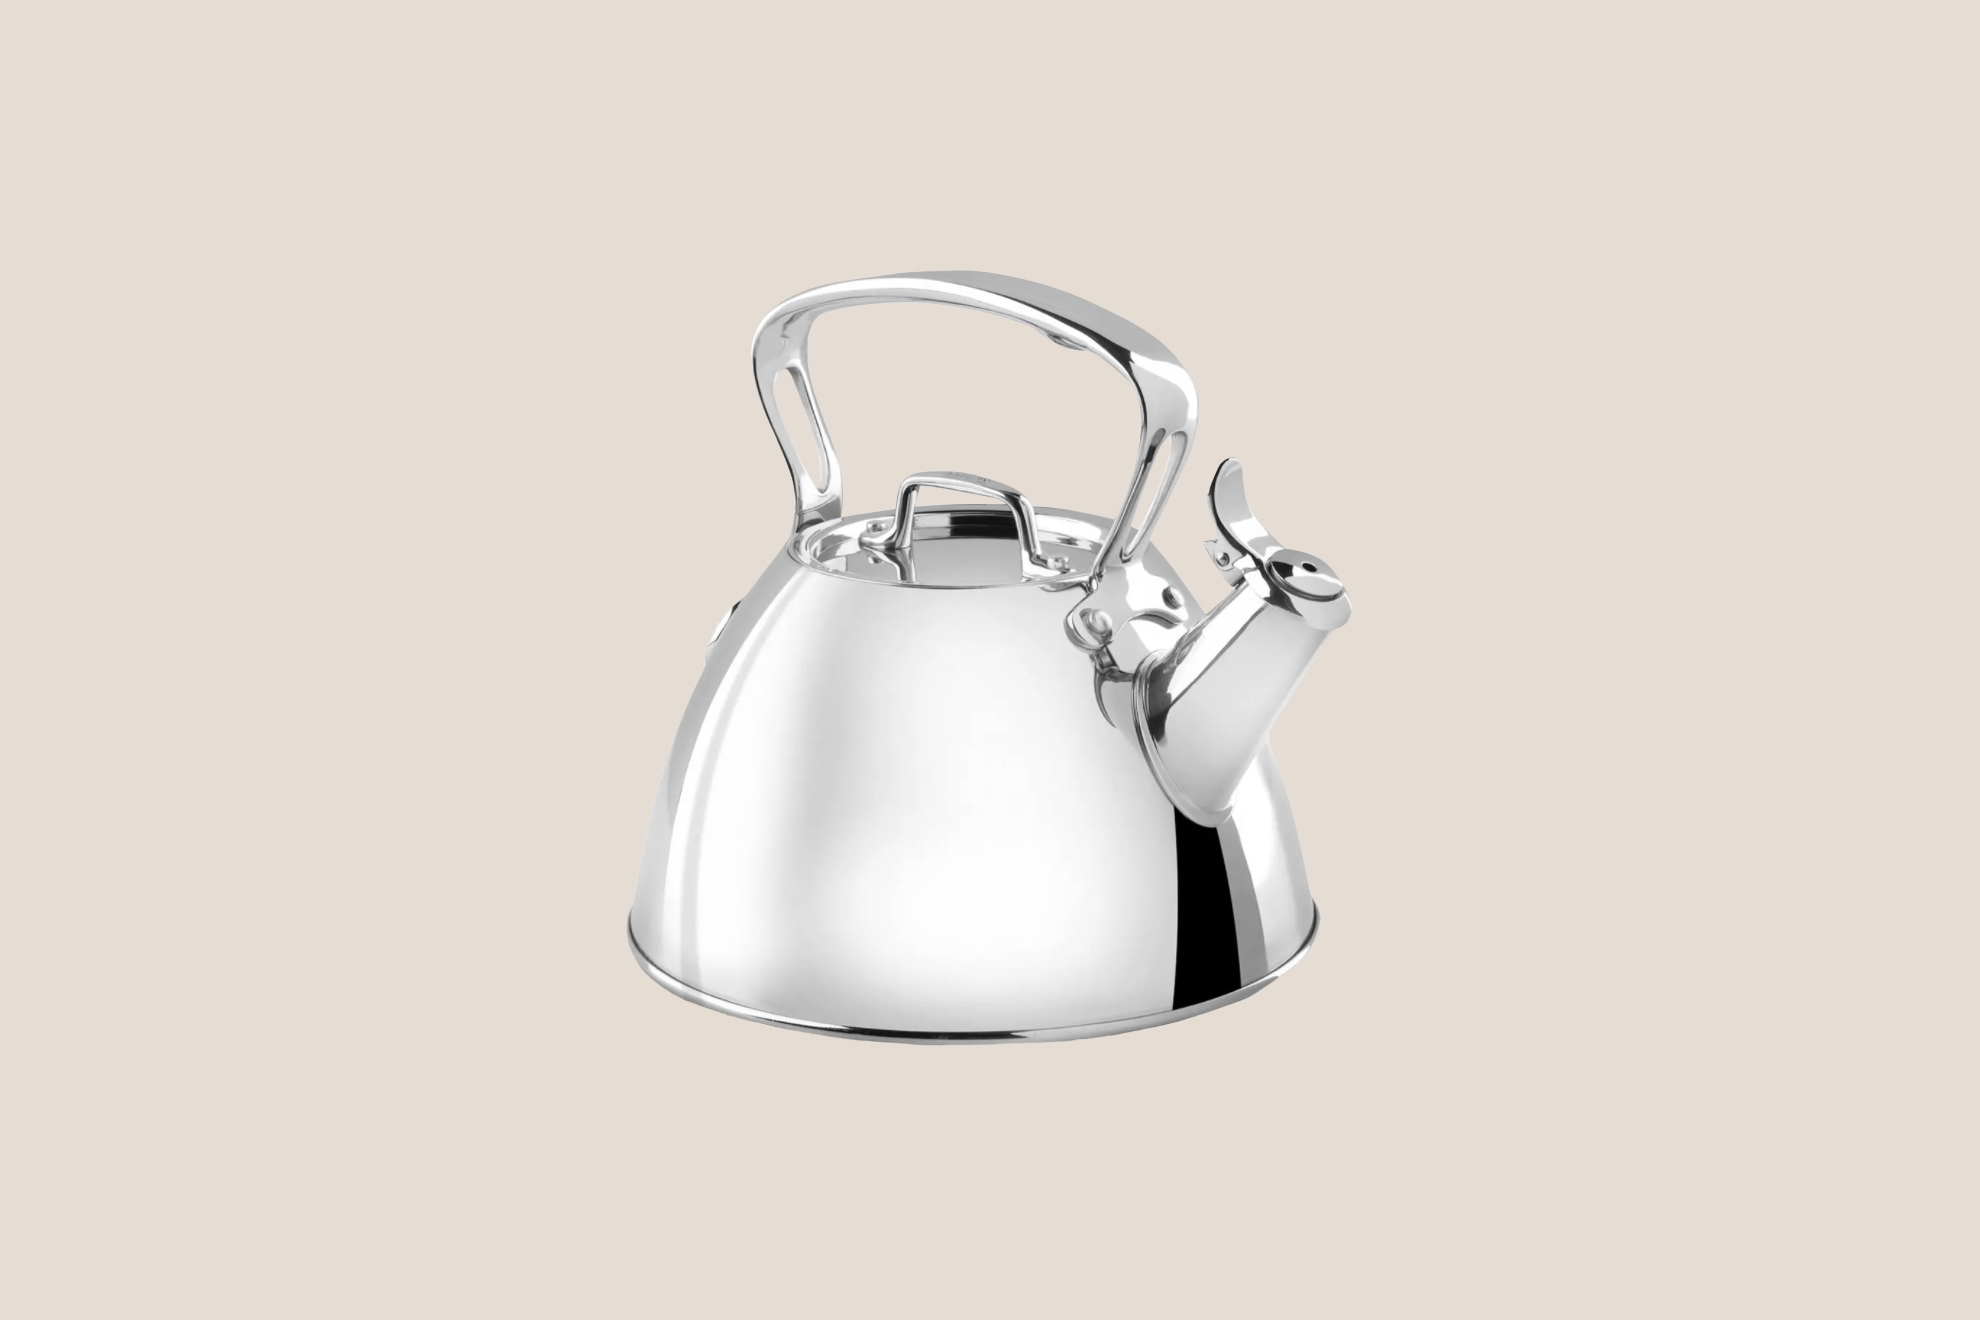 All-Clad Two-Quart Stainless Steel Tea Kettle